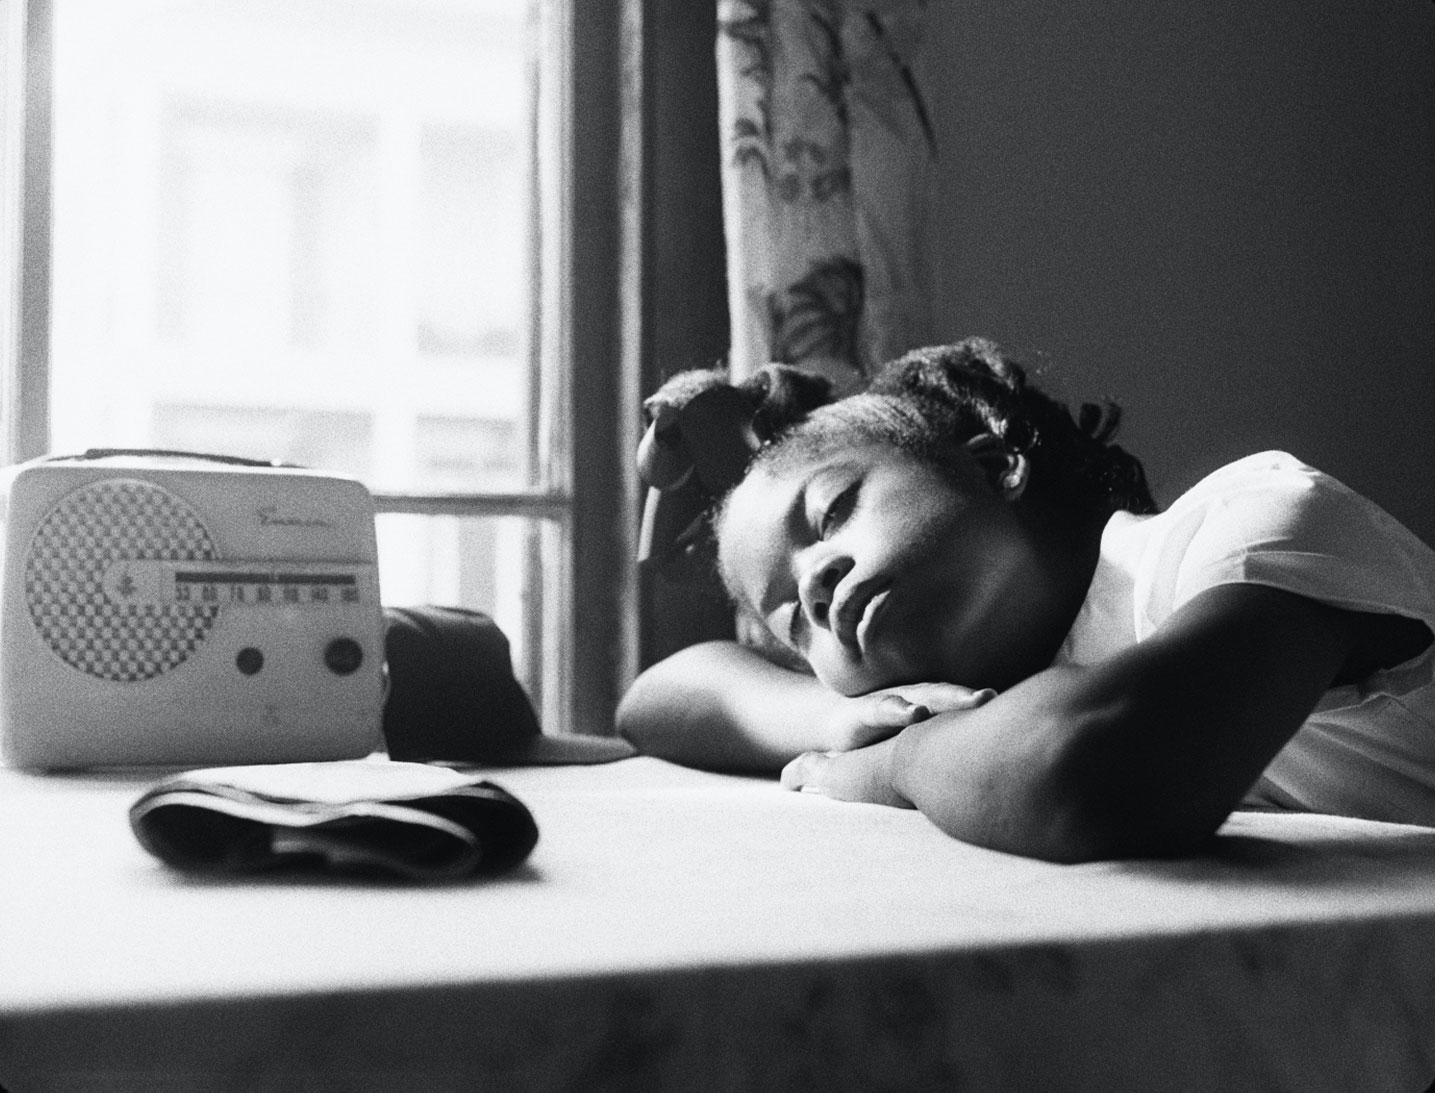 A black-and-white image of a young Black schoolgirl peacefully resting, basking in the sunlight from a bright window.